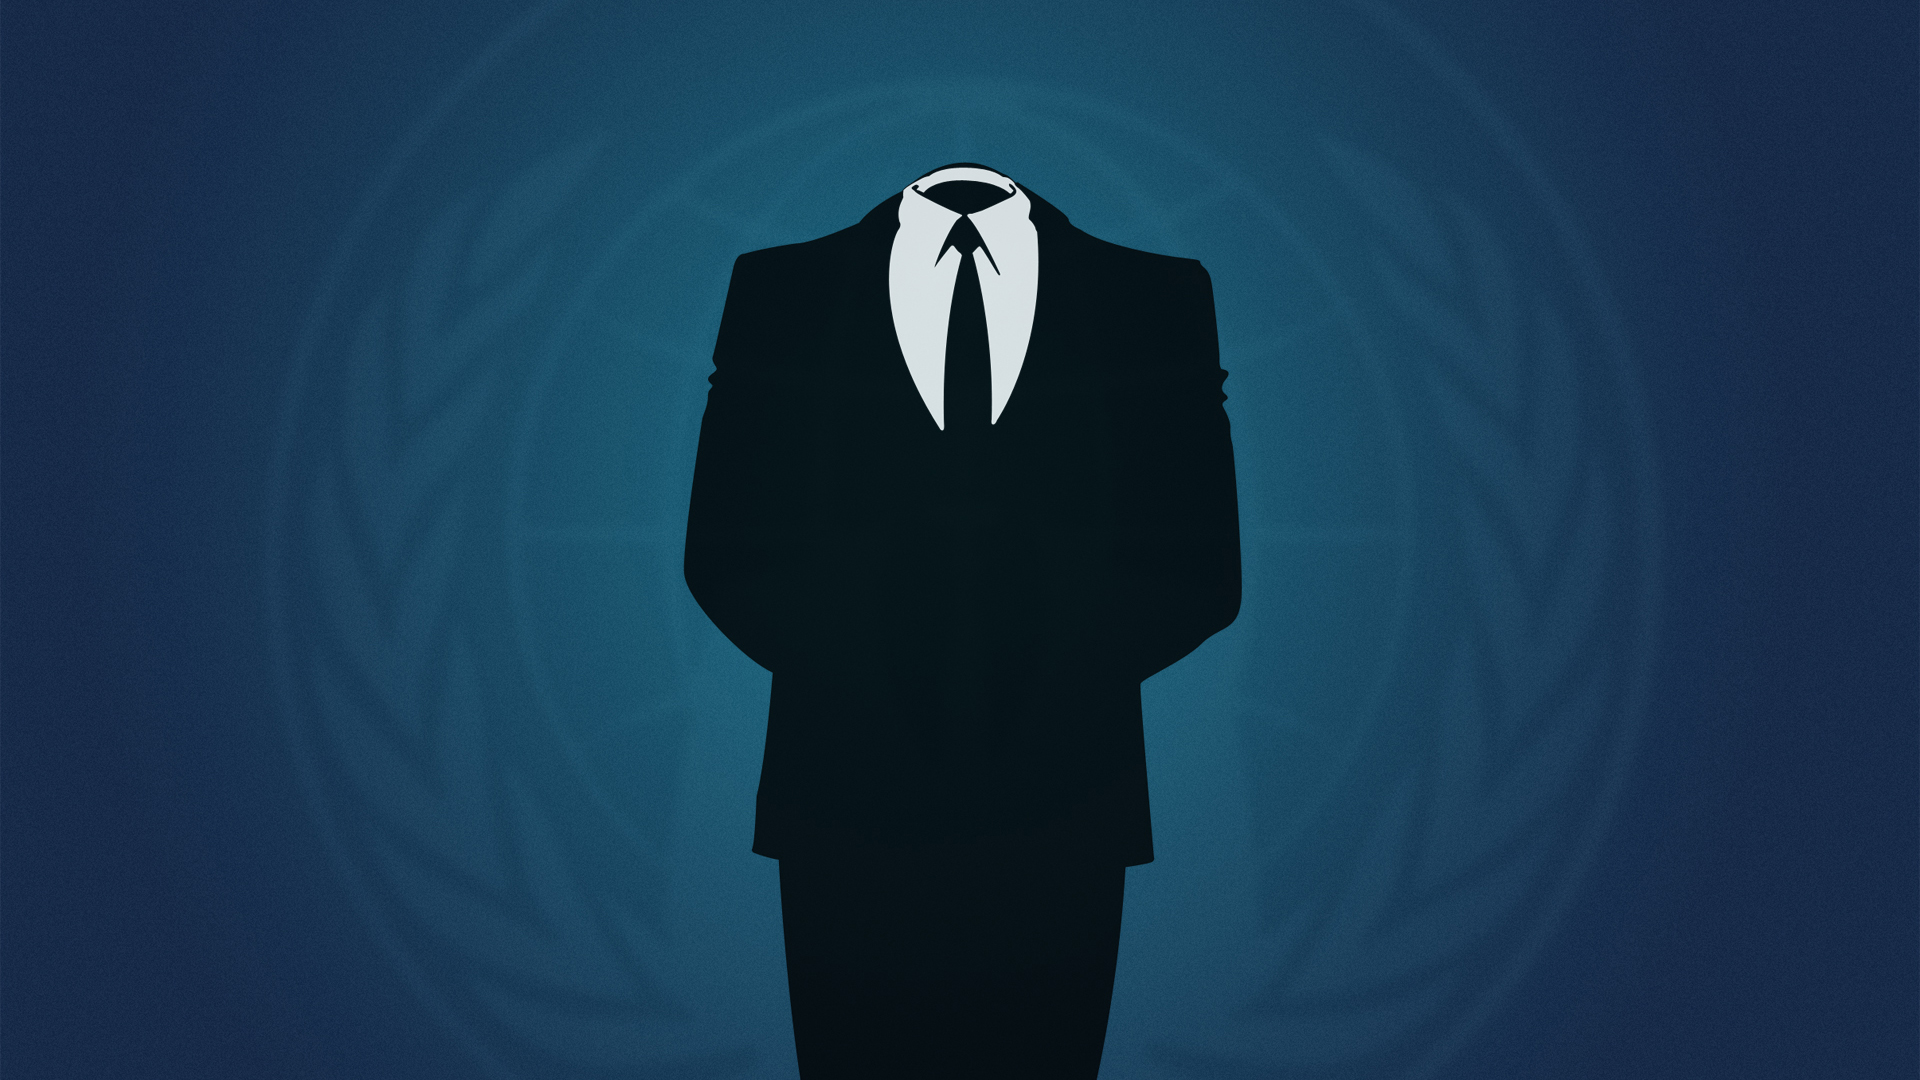 Anonymous wallpapers pictures images - Anonymous wallpaper full hd ...